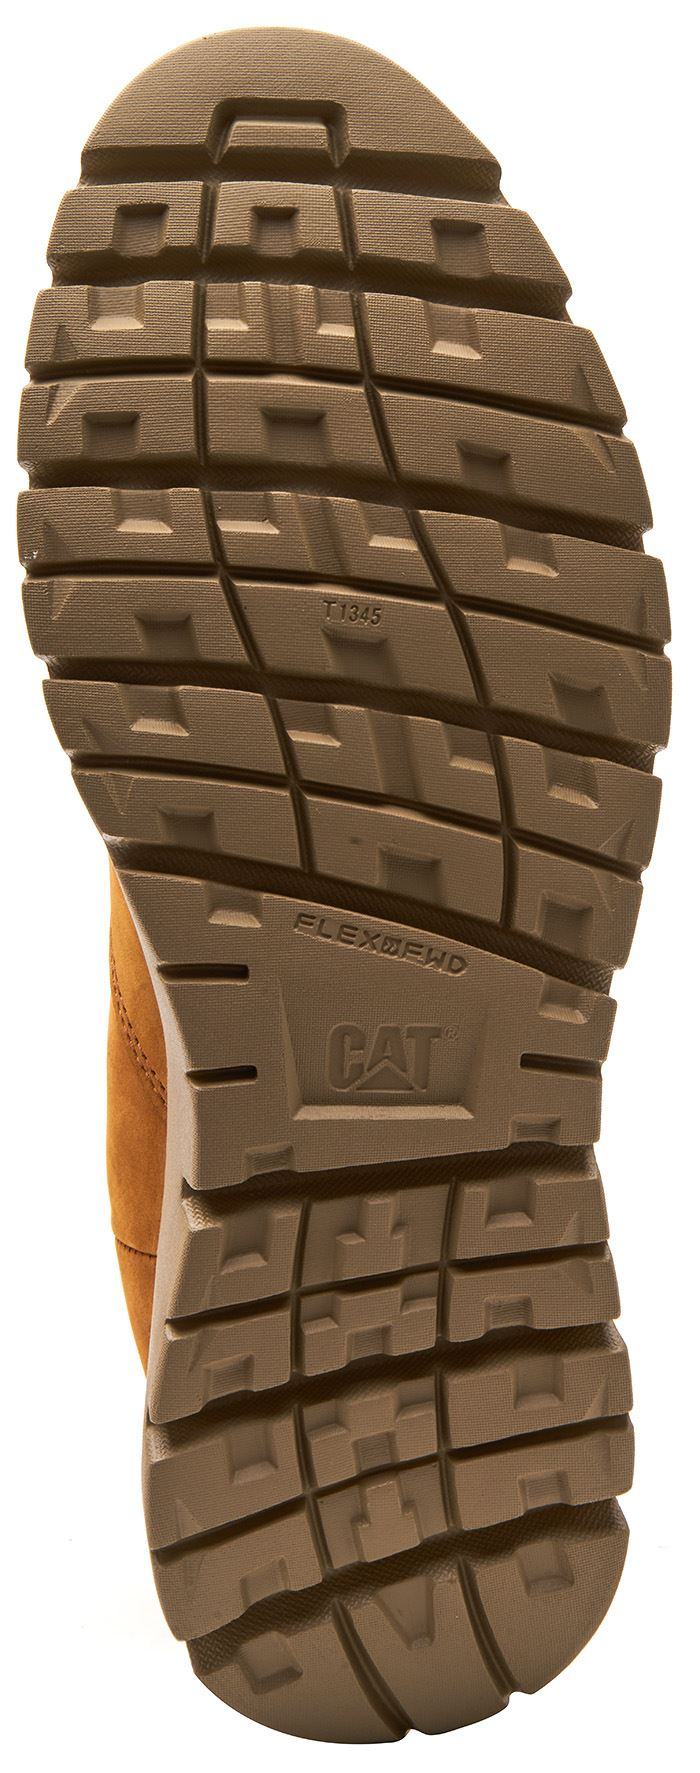 Caterpillar-CAT-Kase-Leather-Ankle-Chelsea-Boots-in-Brown-amp-Tan thumbnail 5